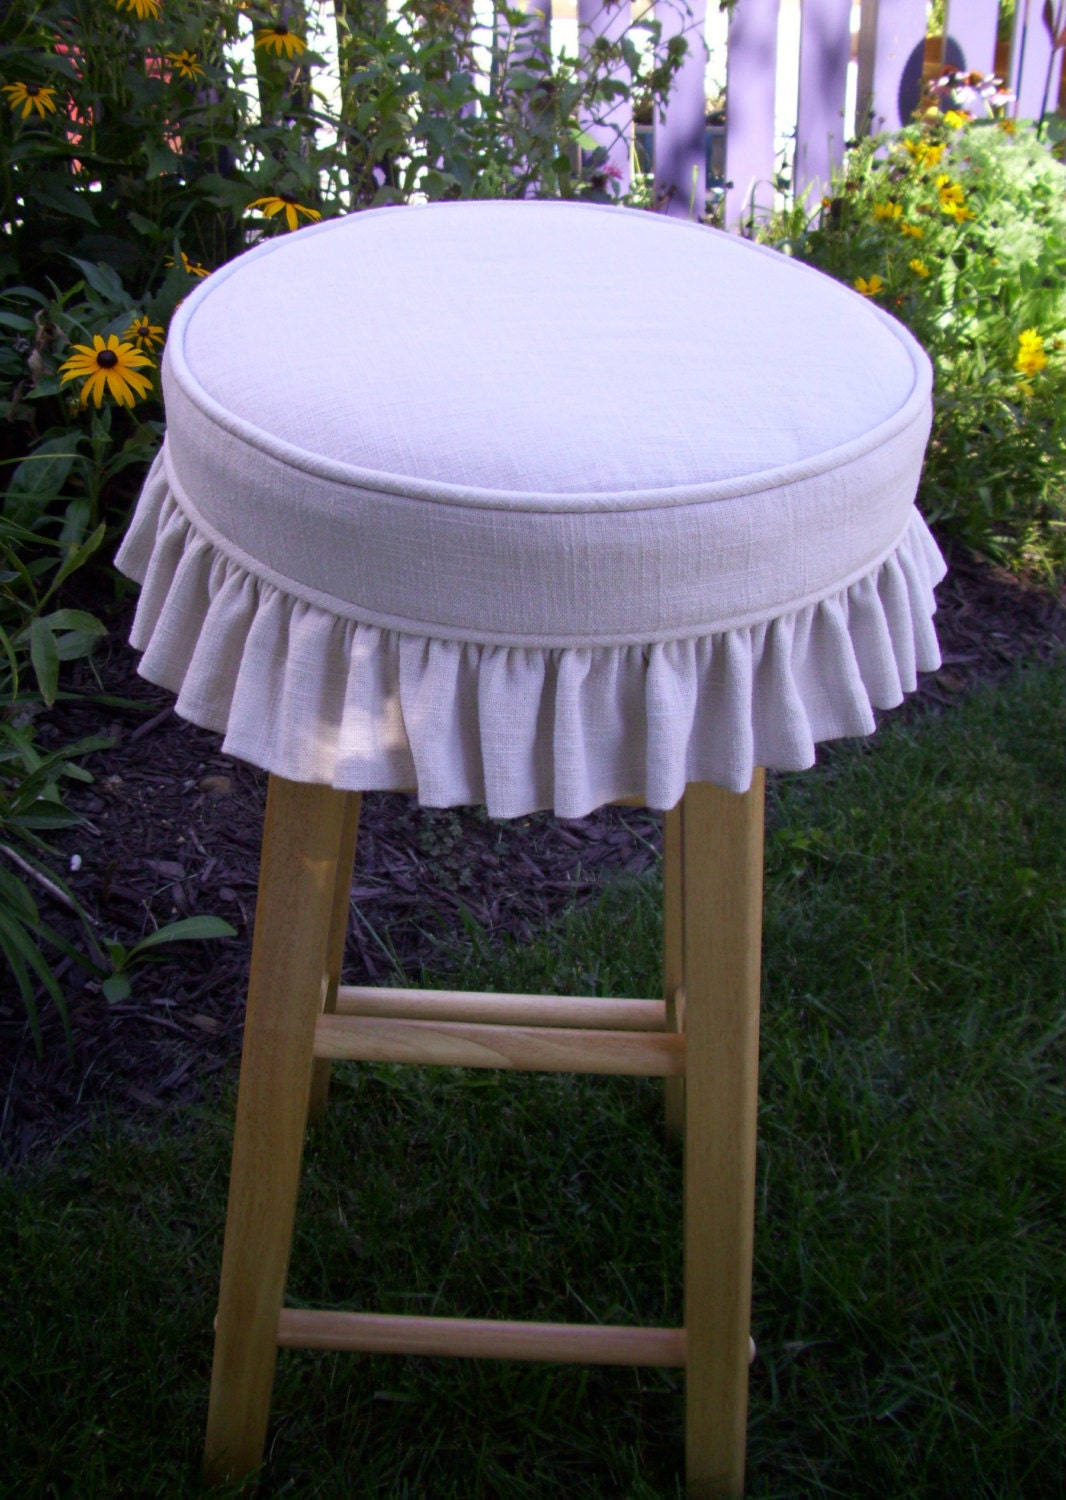 Linen Barstool Slipcover and Cushion Ruffled Skirt Bar Stool : ilfullxfull484175733fjo7 from www.etsy.com size 1066 x 1500 jpeg 408kB